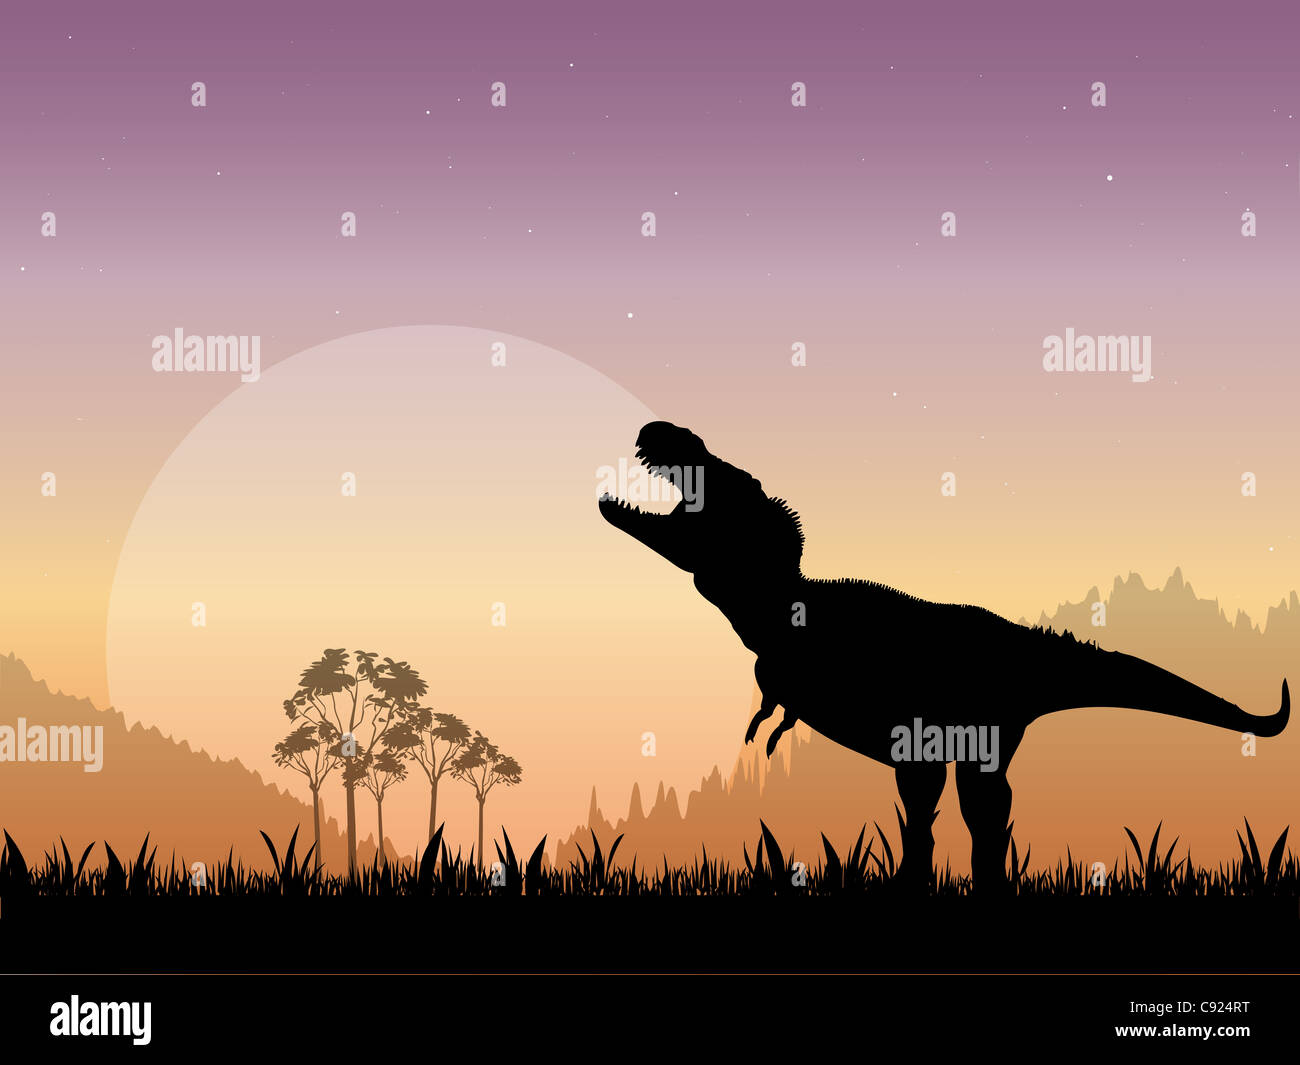 The Silhouette of a Tyrannosaurus Rex Roaring in front of a dull moon with a starry night sky as the backdrop. - Stock Image